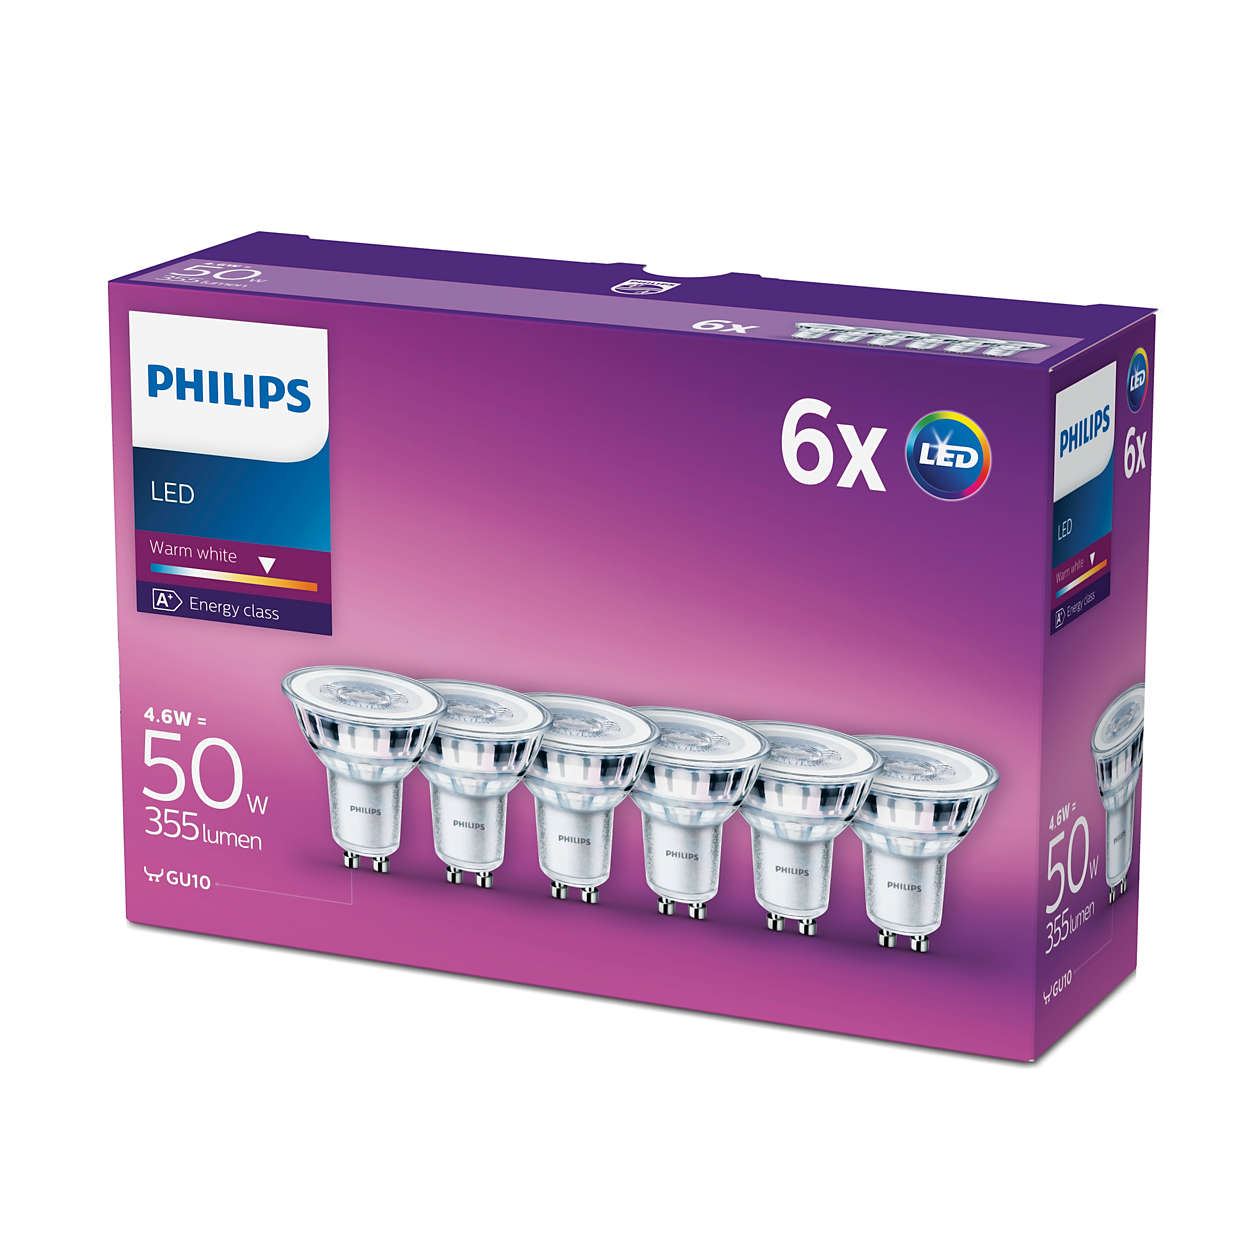 6 pk philips led glass gu10 50w a spot light bulb. Black Bedroom Furniture Sets. Home Design Ideas